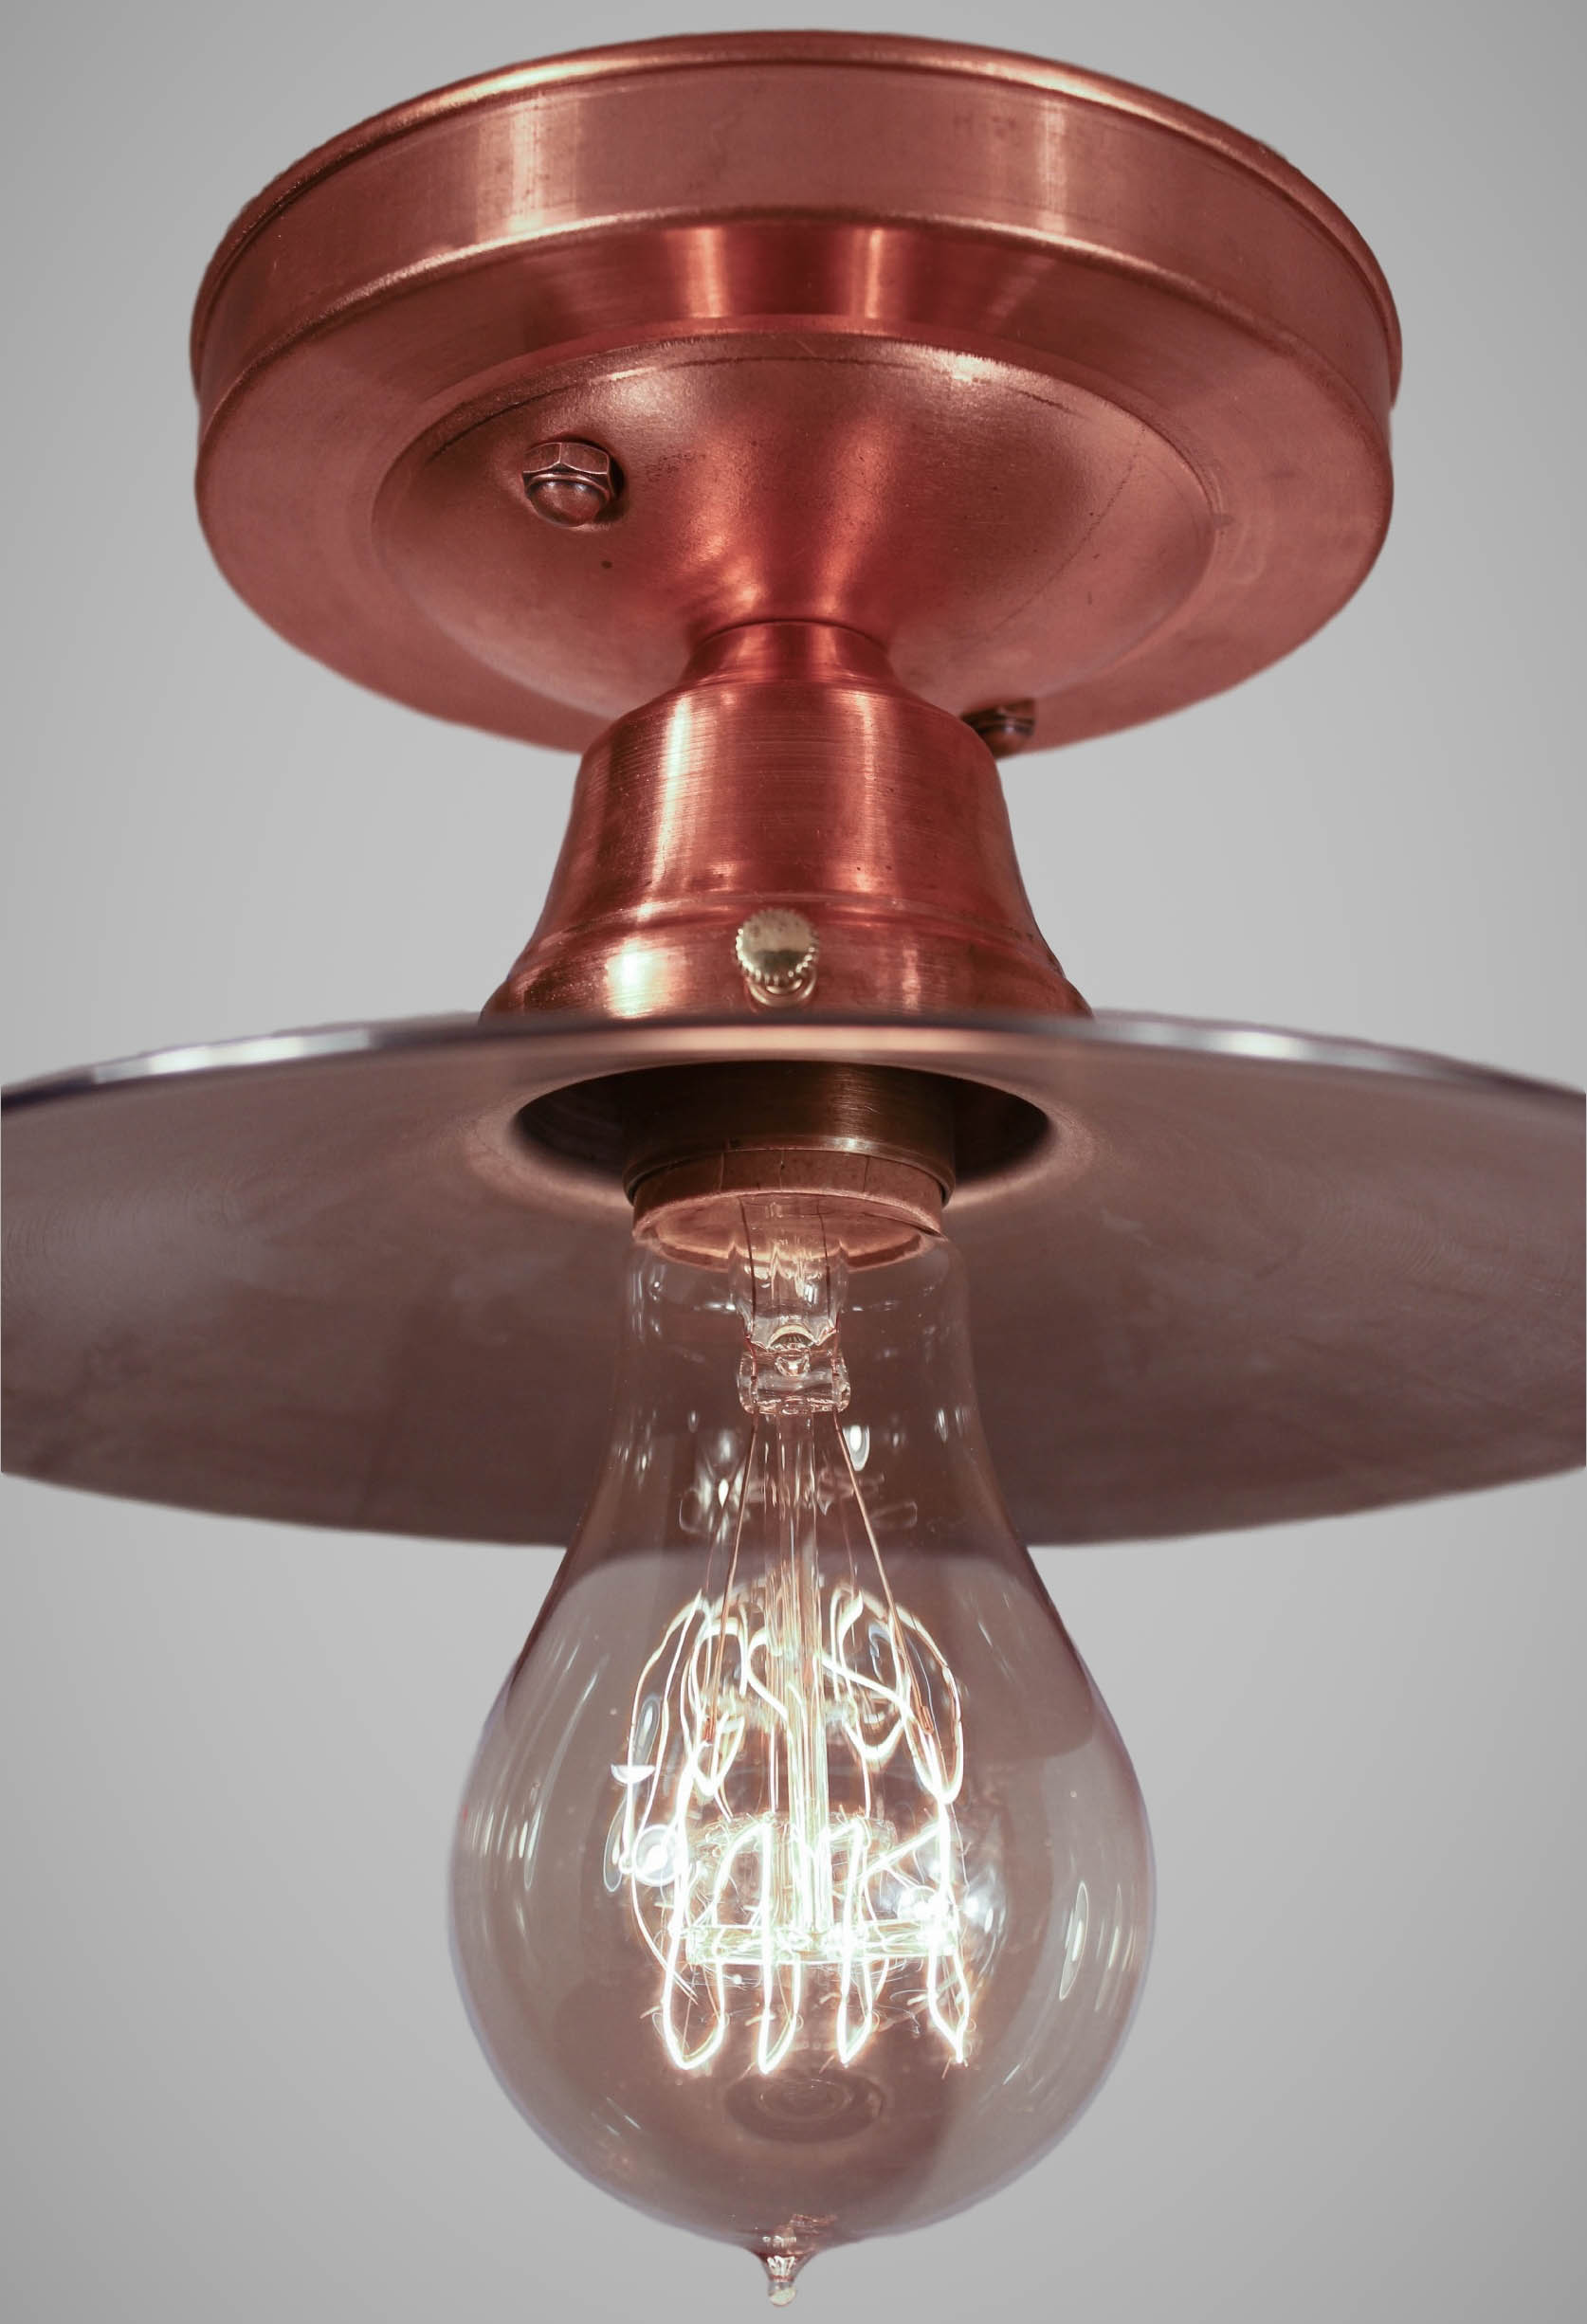 Copper Flushmount Ceiling Light Vintage Industrial